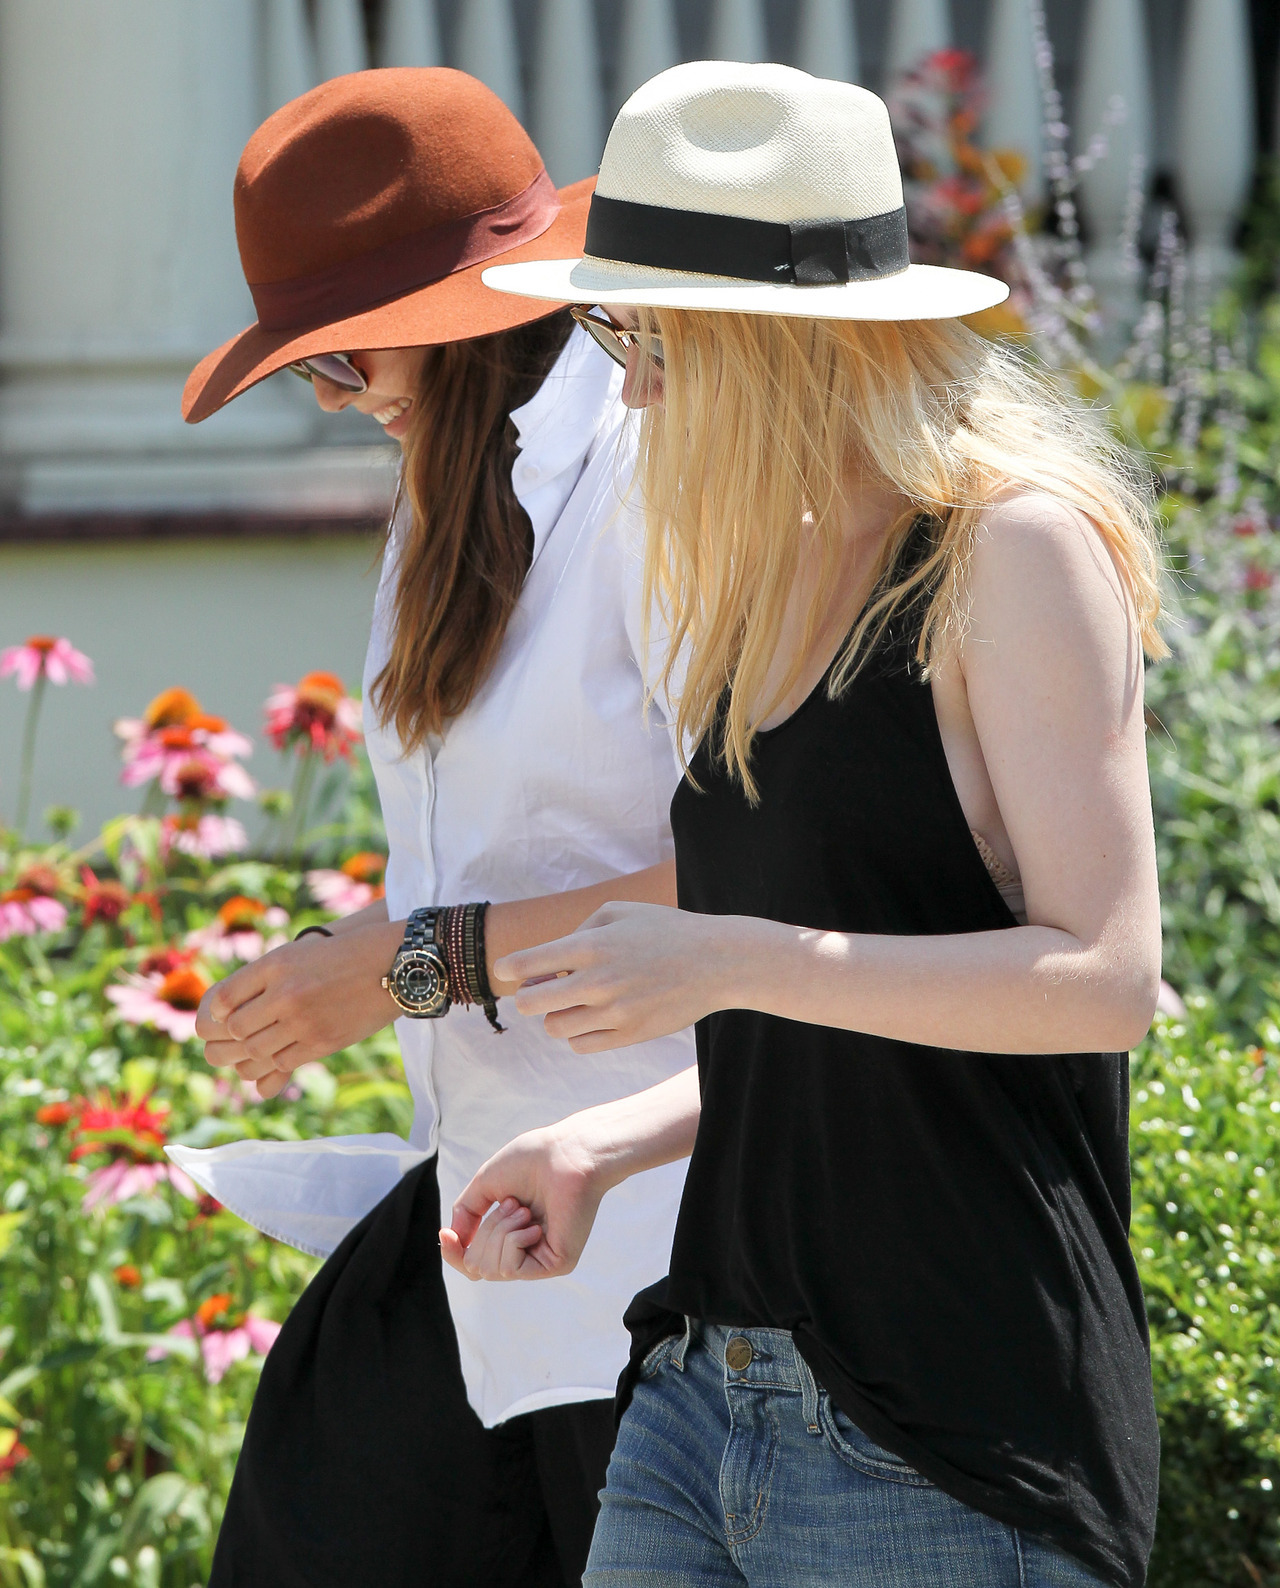 Elizabeth Olsen and Dakota Fanning on the set of Very Good Girls in NYC, July 10th These two are so wonderful to look at together.  Mebbekissher?